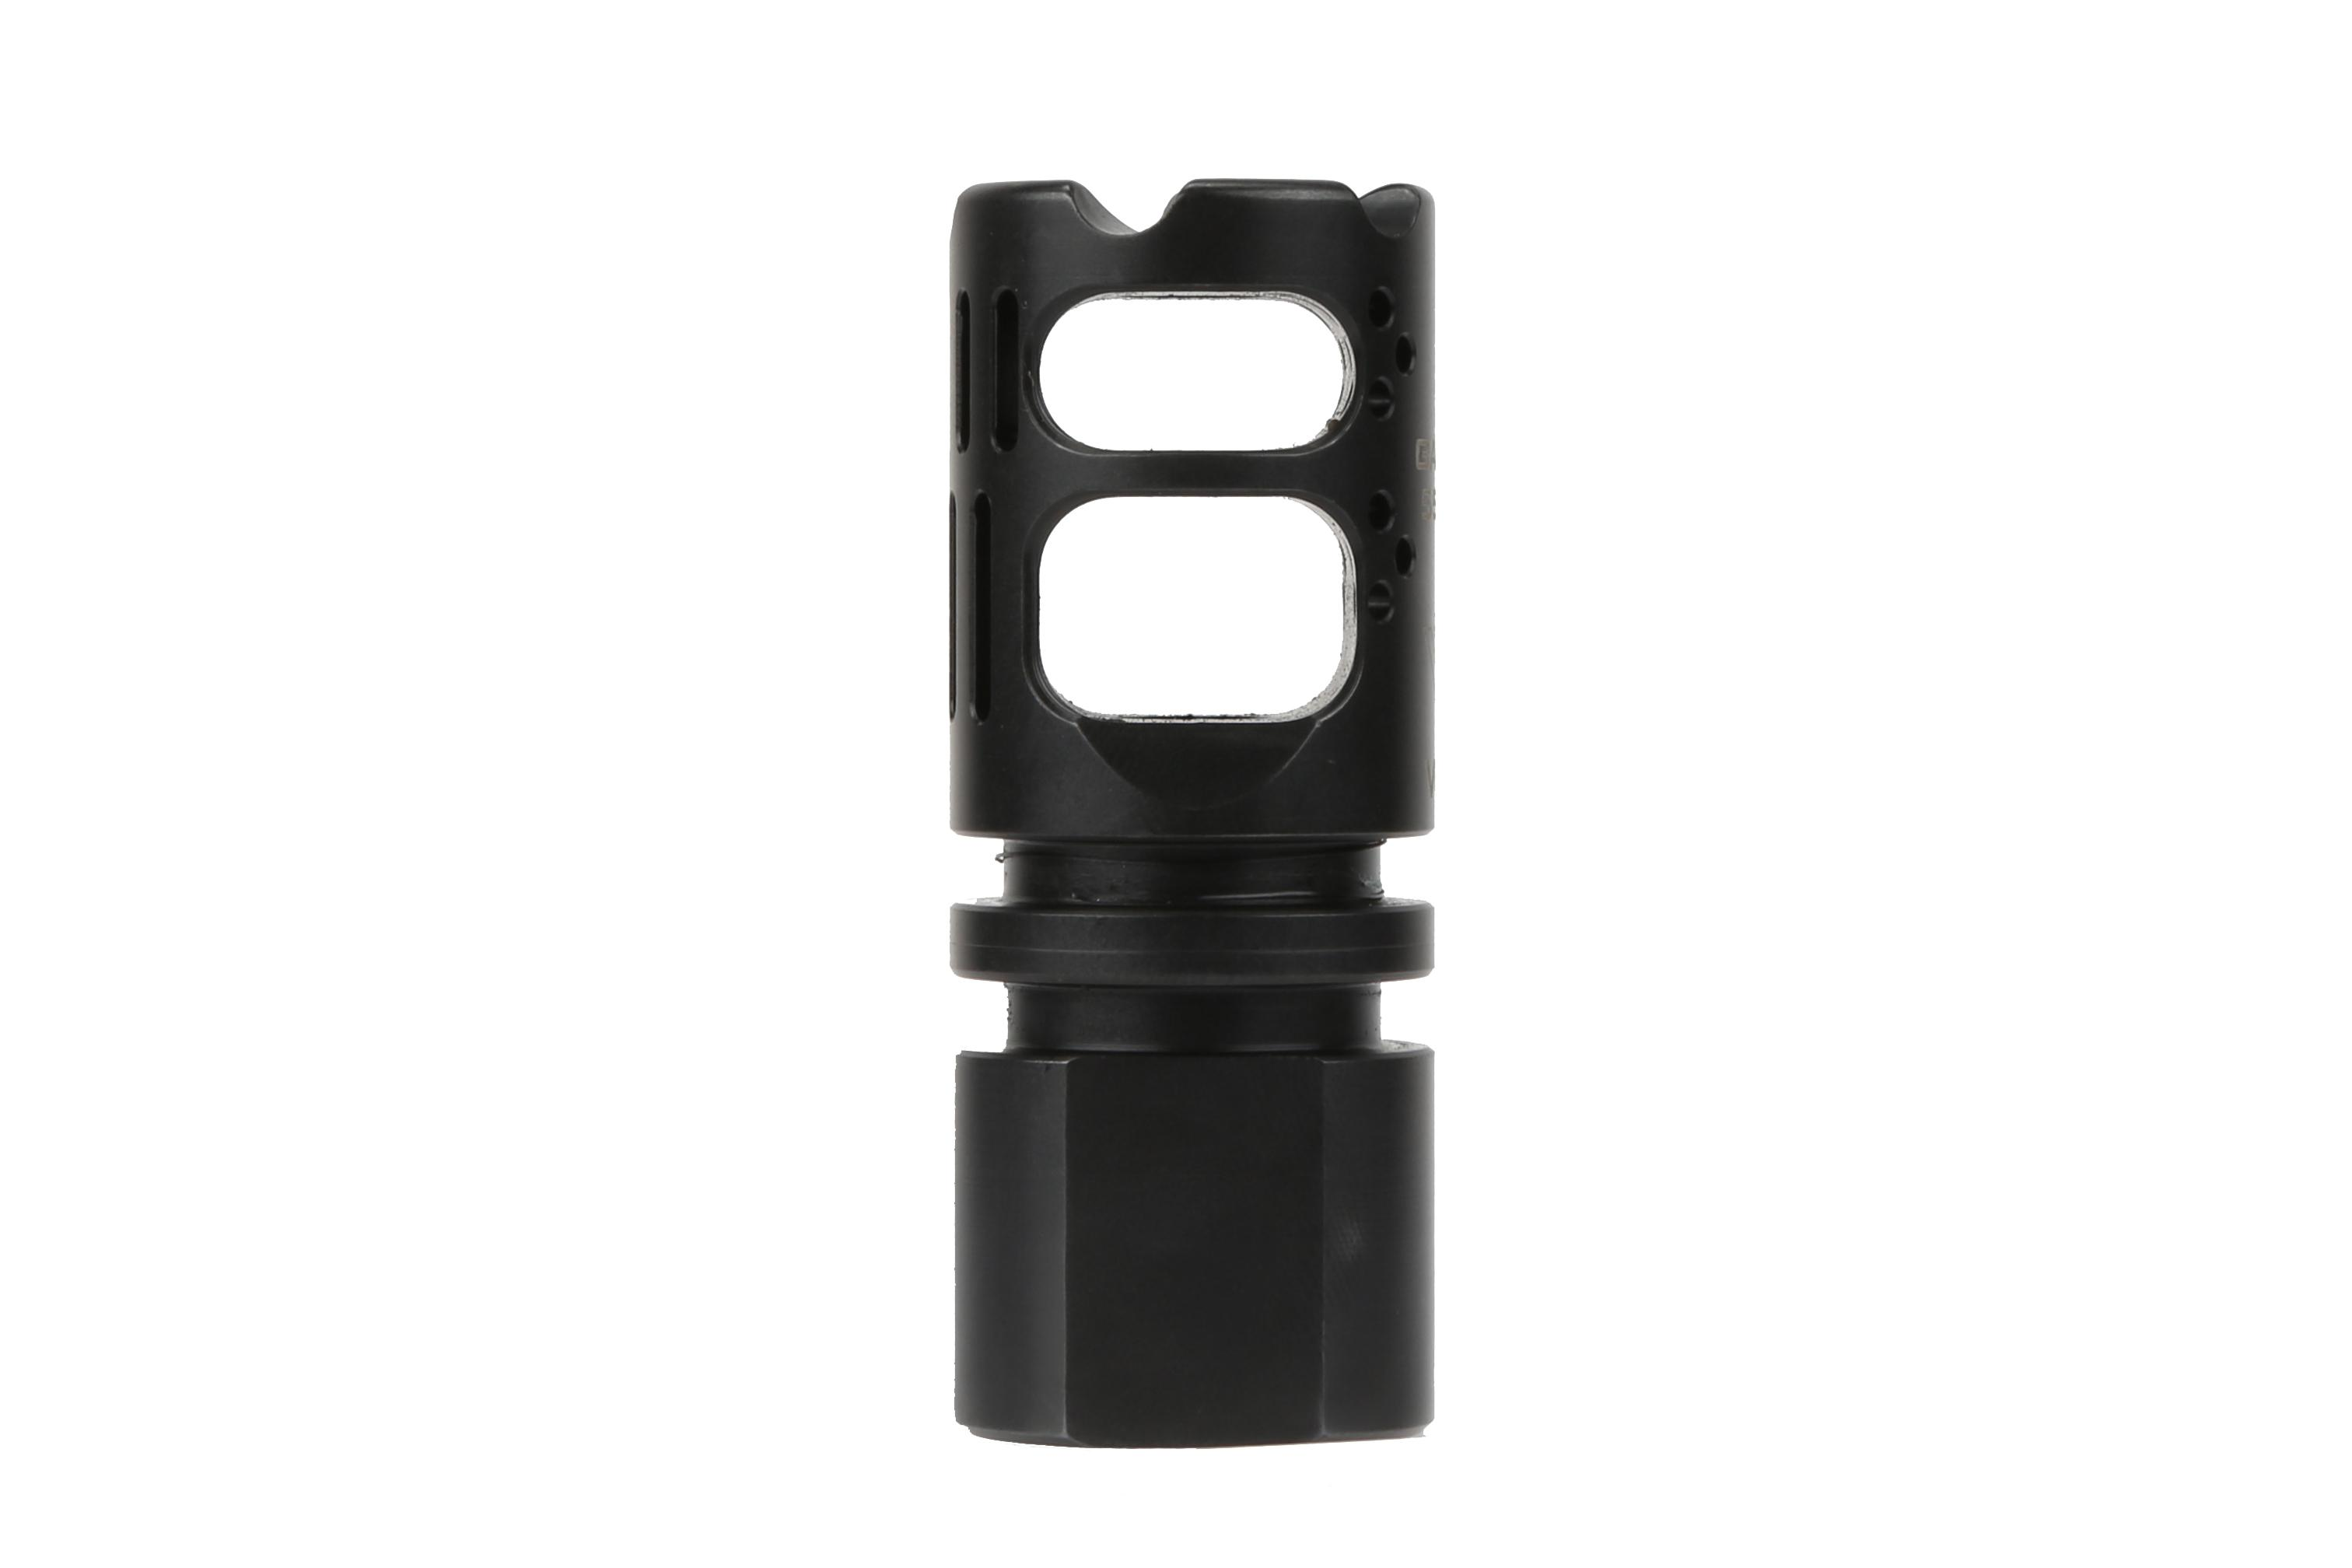 VG6 Precision Gamma 556 EX High Performance Muzzle Brake Standard Type, APVG100002A